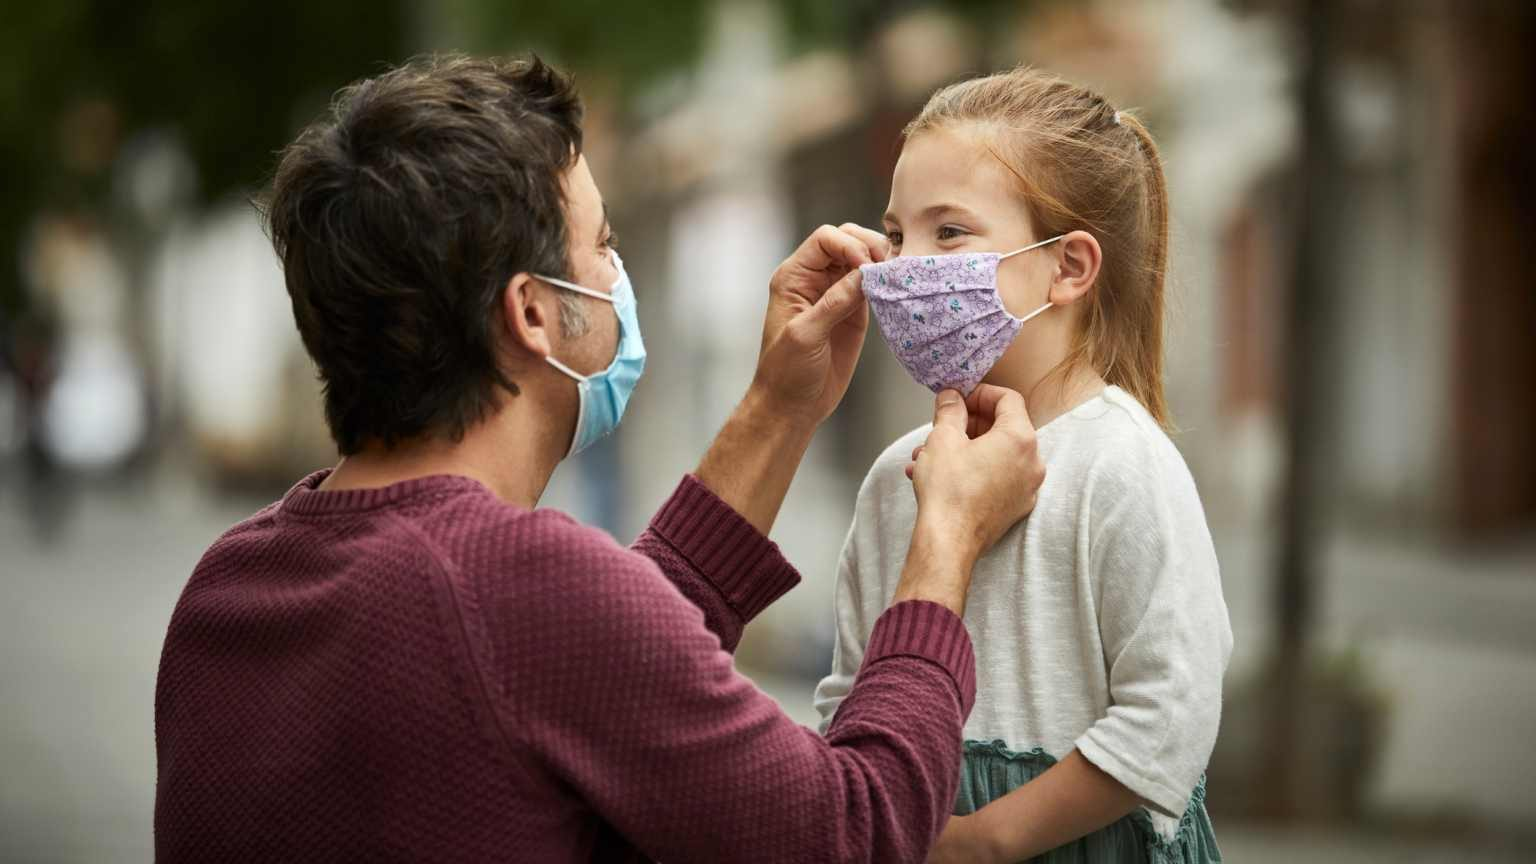 Father with surgical face mask, is putting a hand made protective face mask on his little daughter for the COVID-19 pandemic.